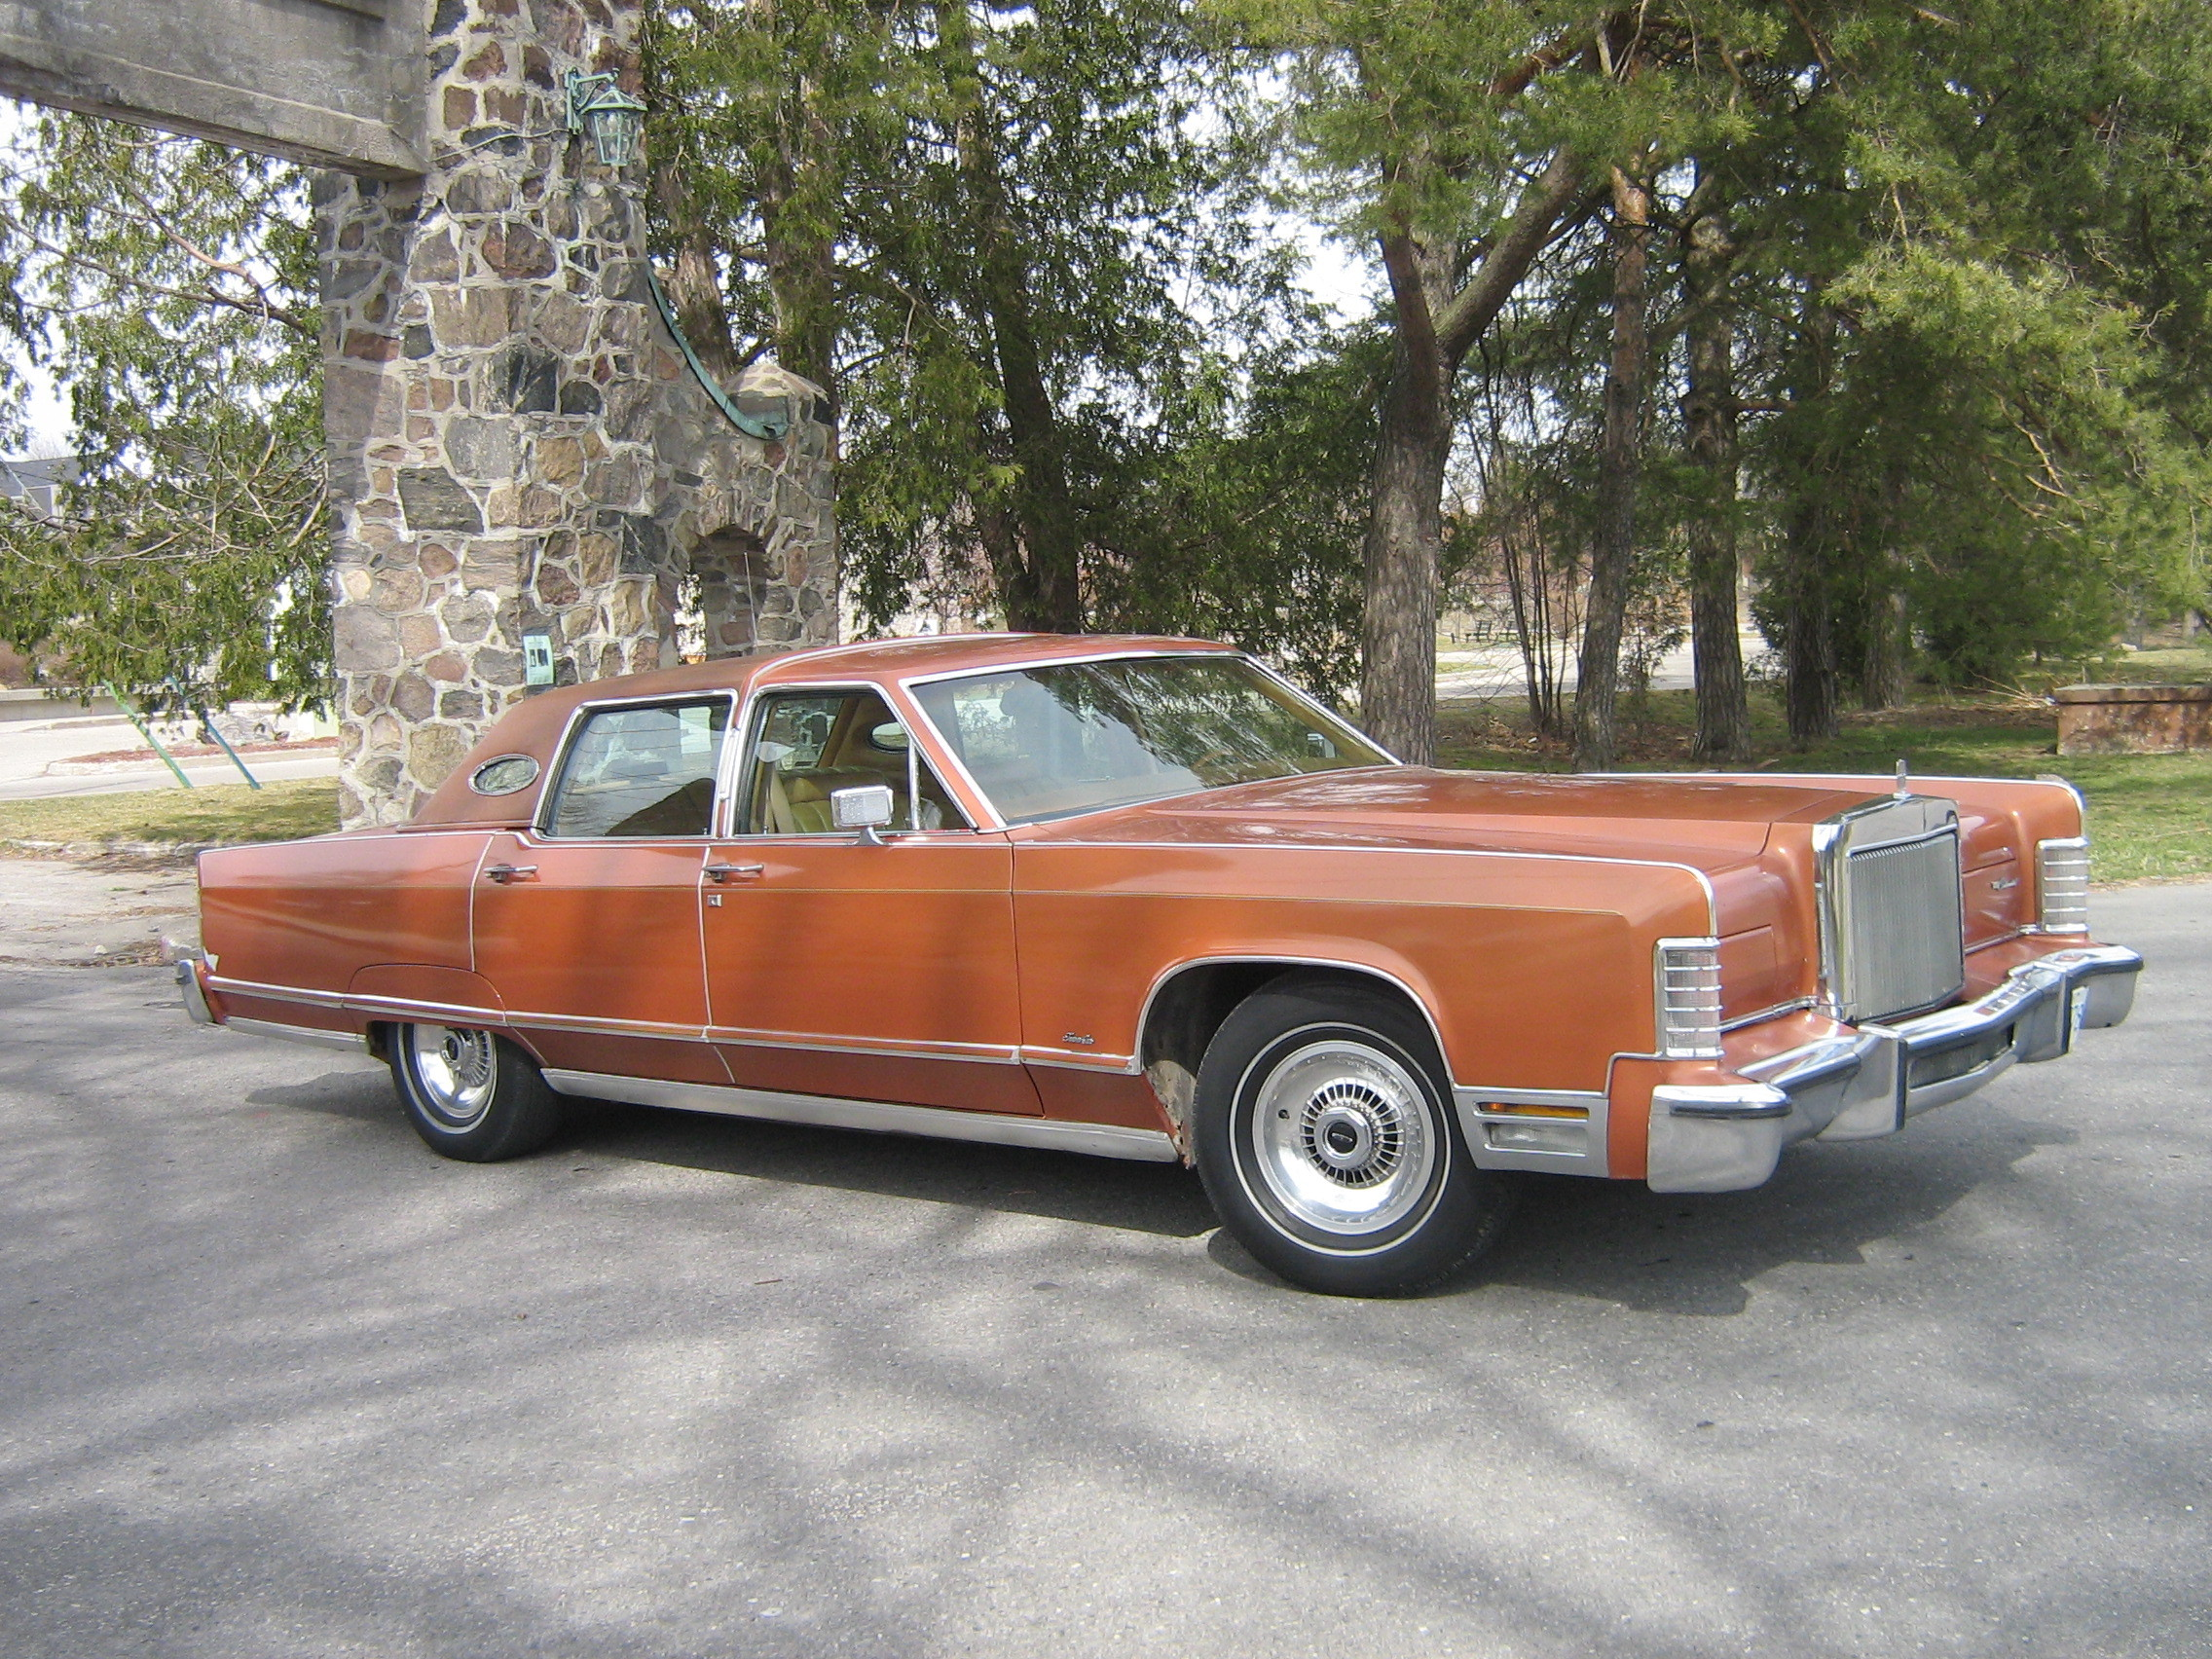 One_Fast_Omni 1977 Lincoln Continental 12919920